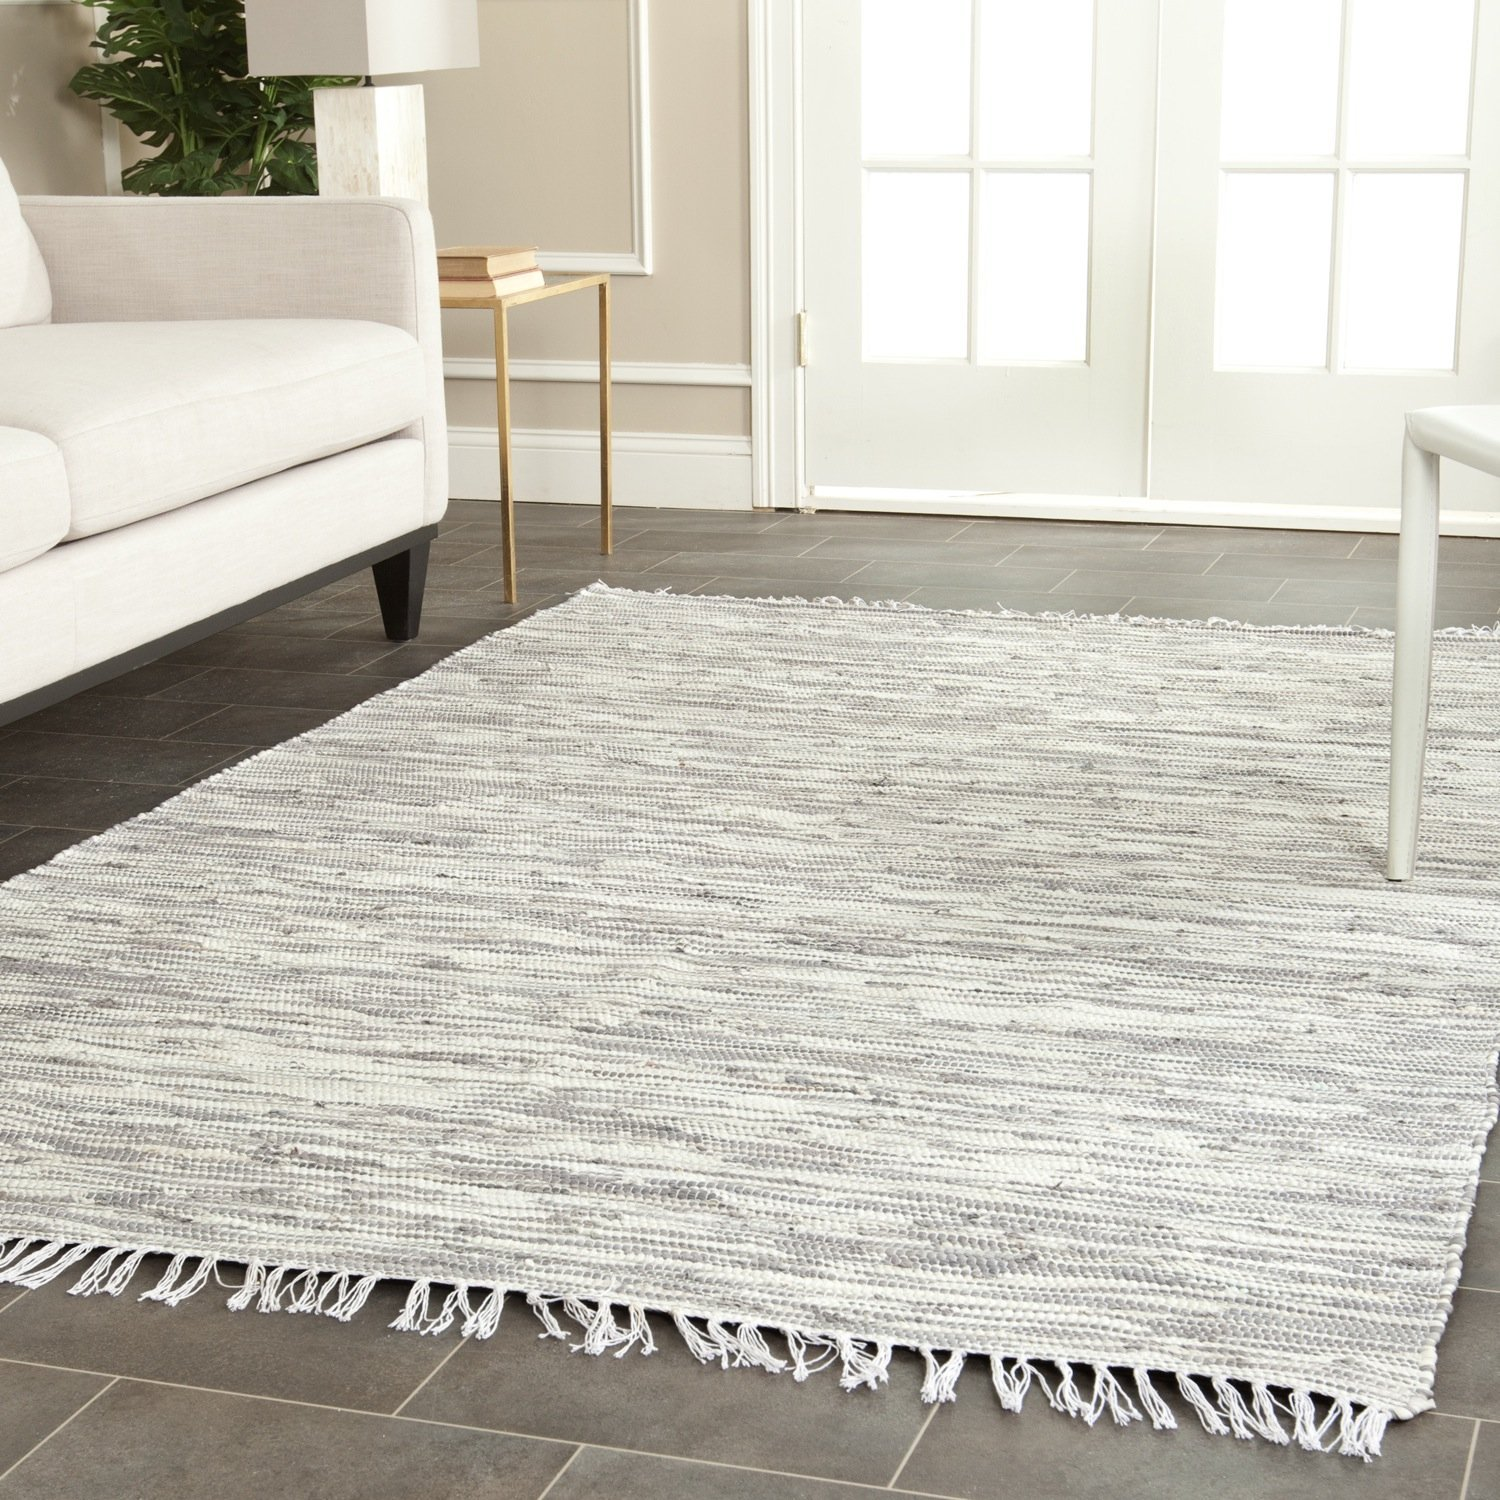 Non Toxic Area Rugs For Your Home The Best Organic Lifestyle